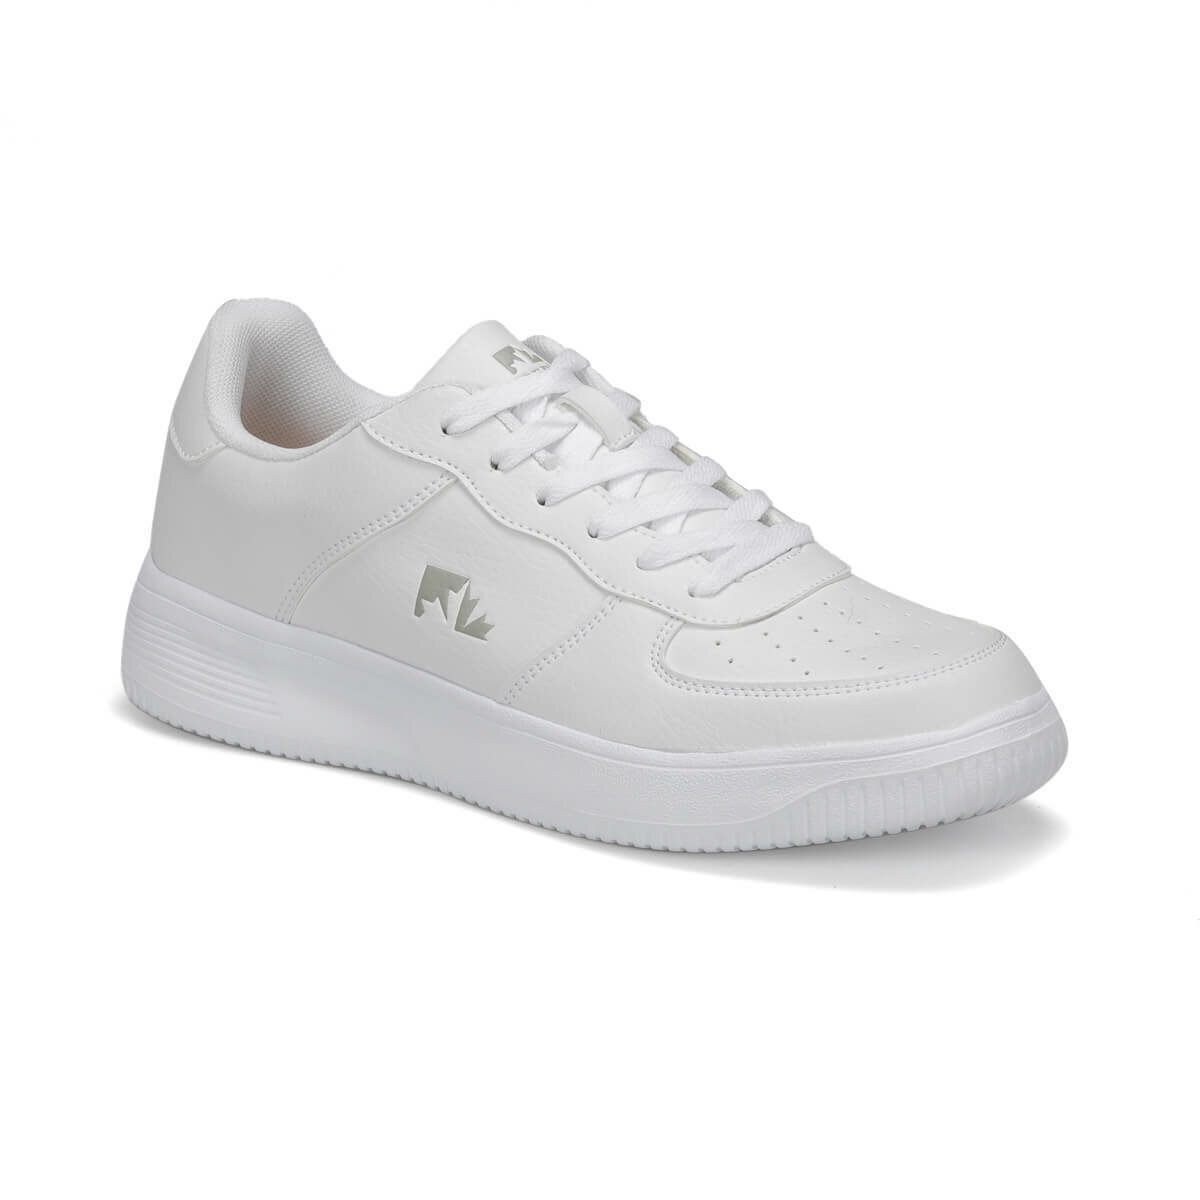 FLO FINSTER 9PR White Men 'S Sneaker Shoes LUMBERJACK